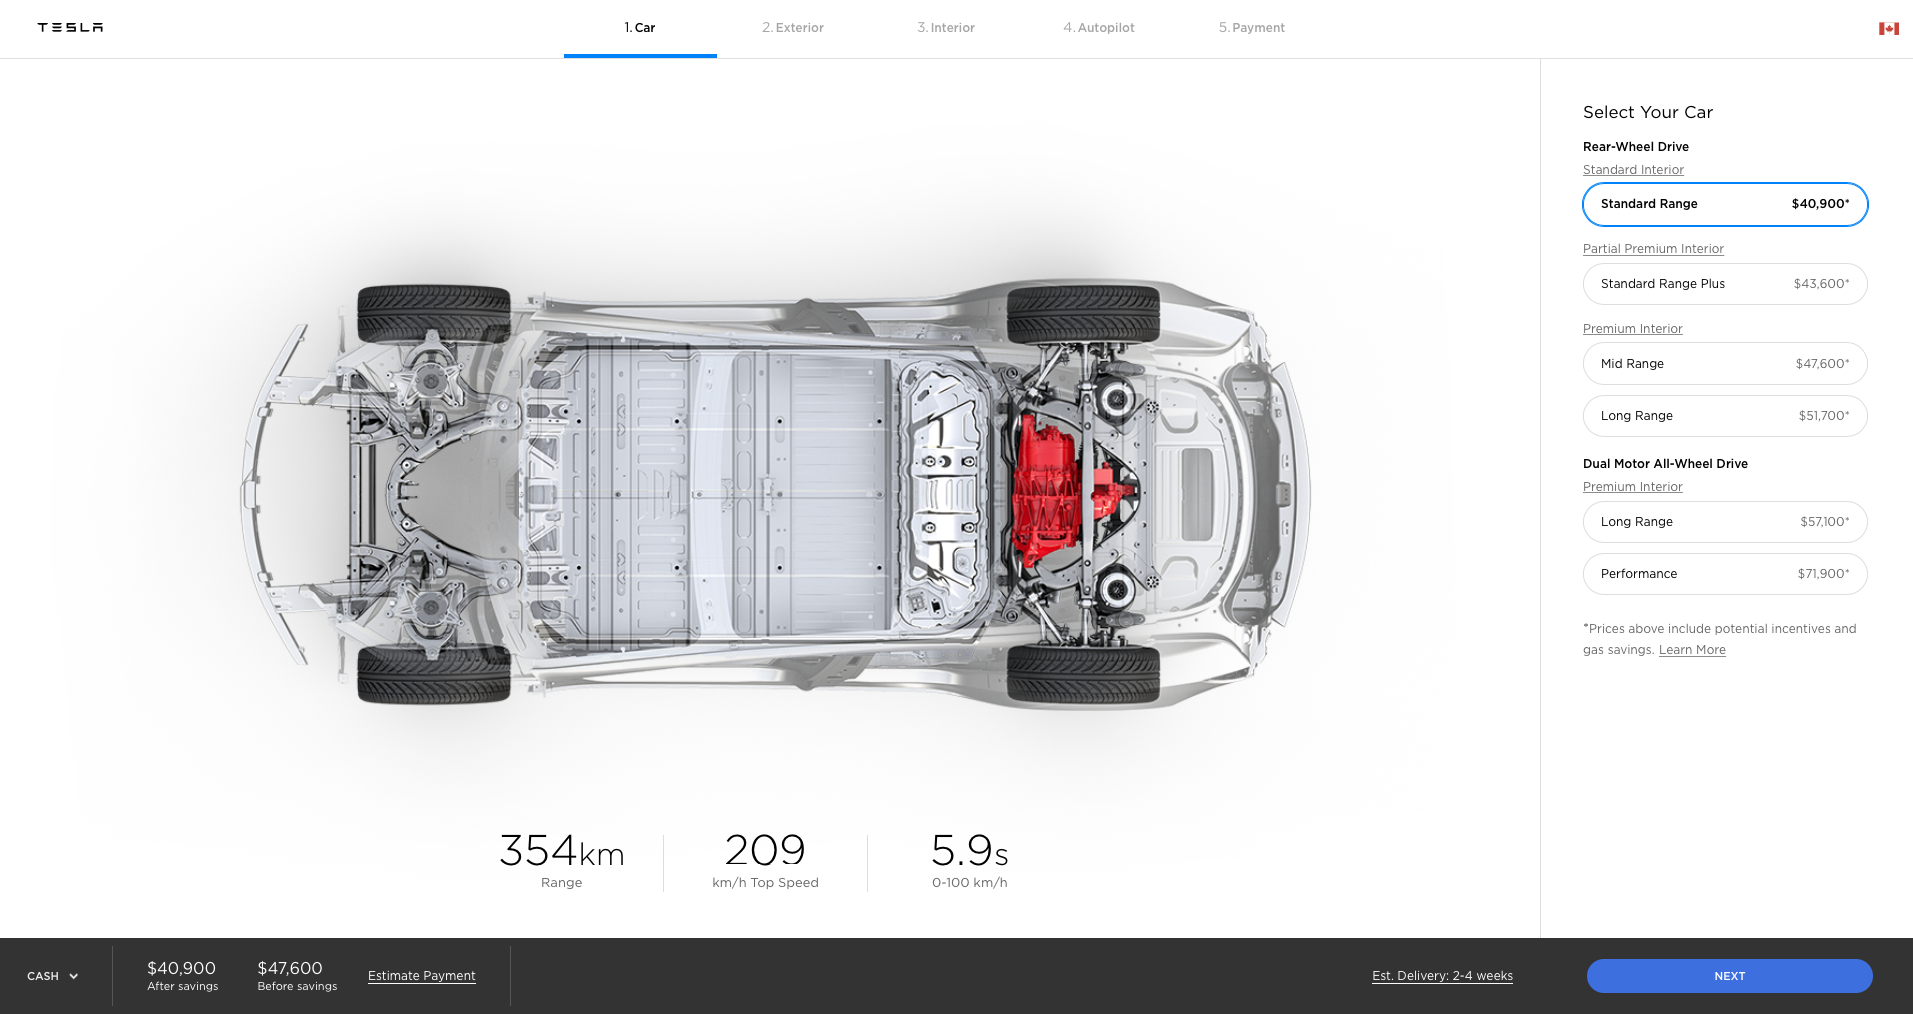 Tesla drops price of Model 3 to $47,600 in Canada